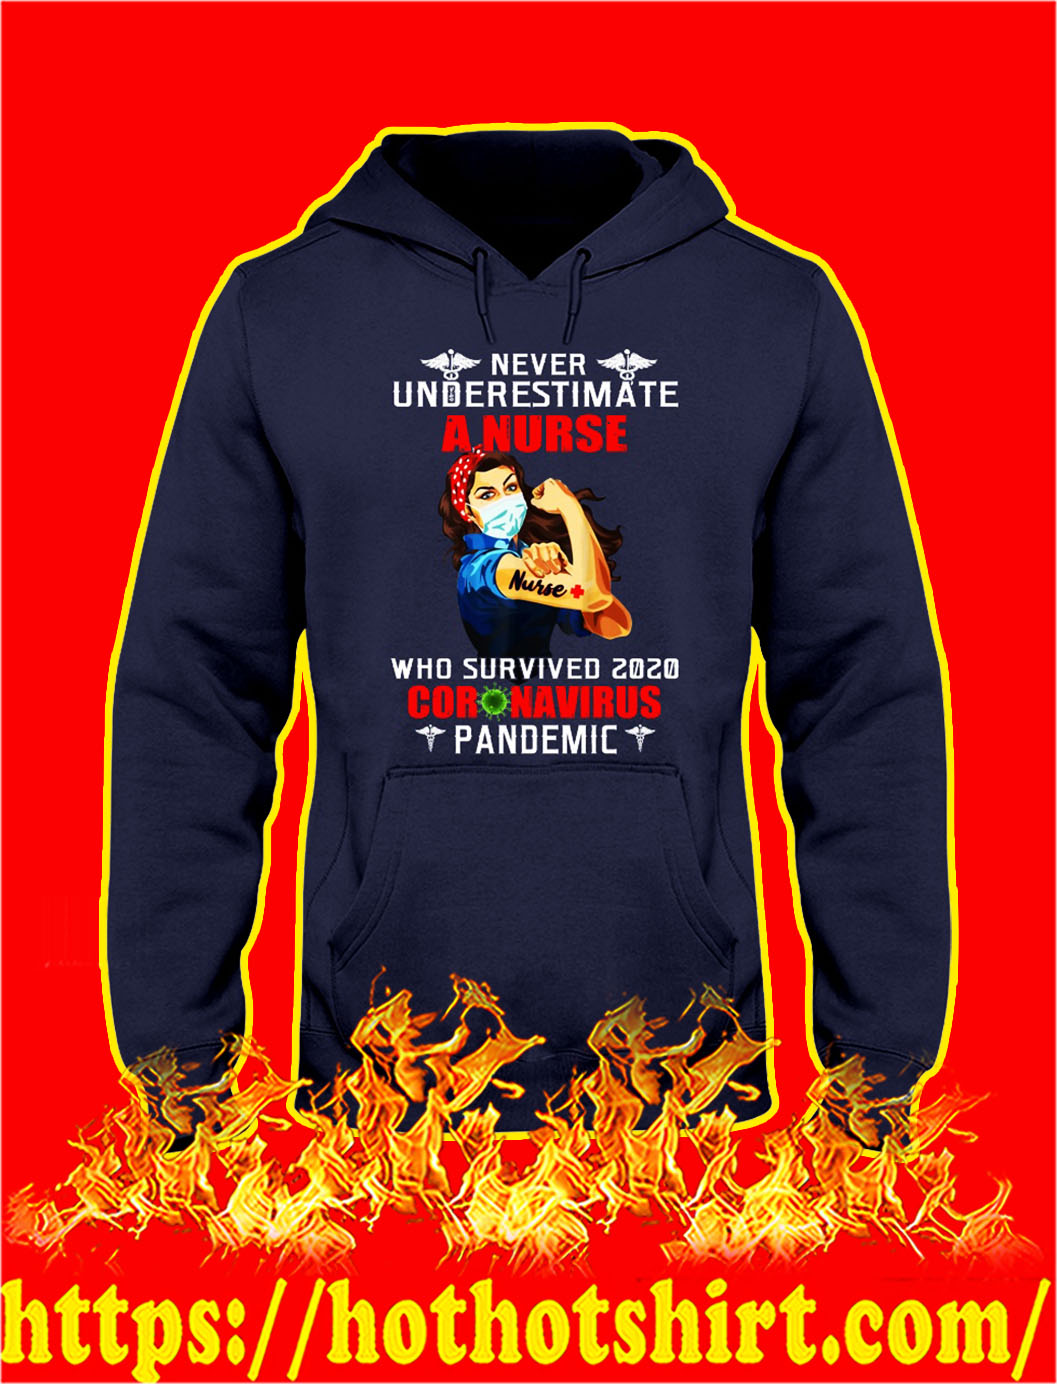 Never underestimate a nurse who survived 2020 coronavirus pandemic hoodie